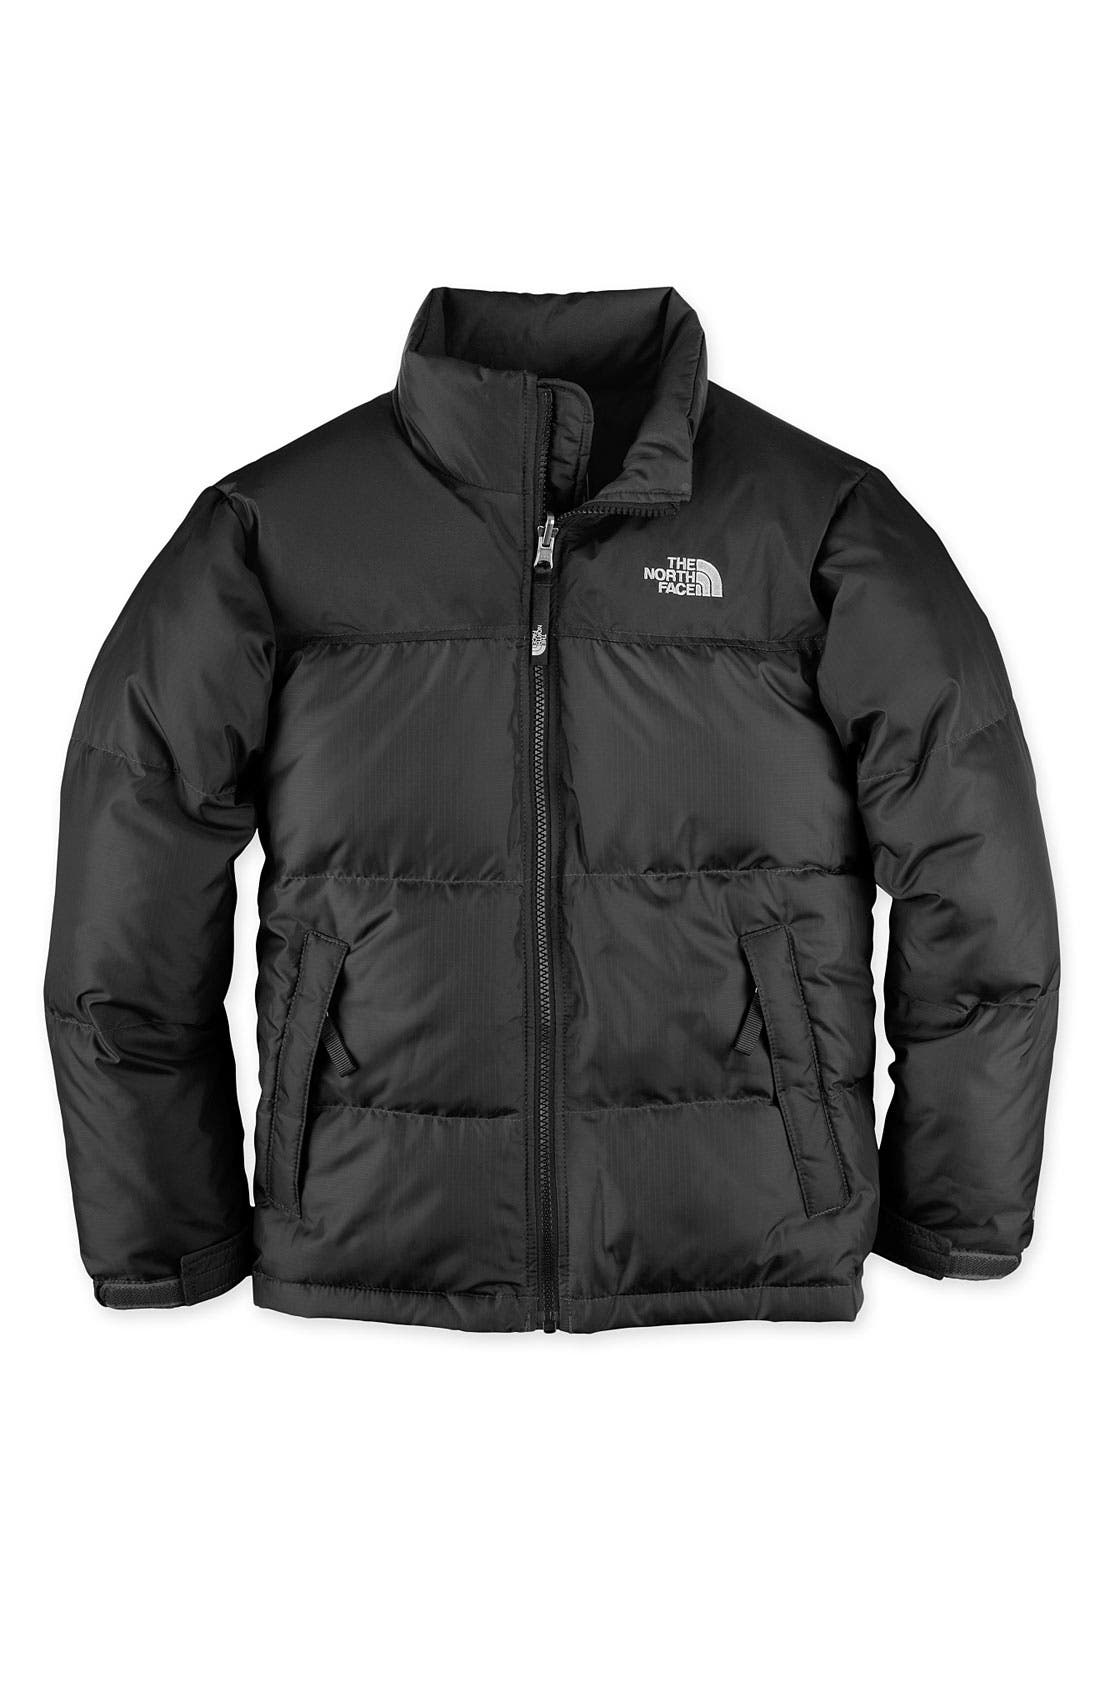 Main Image - The North Face 'Nuptse' Jacket (Little Boys)